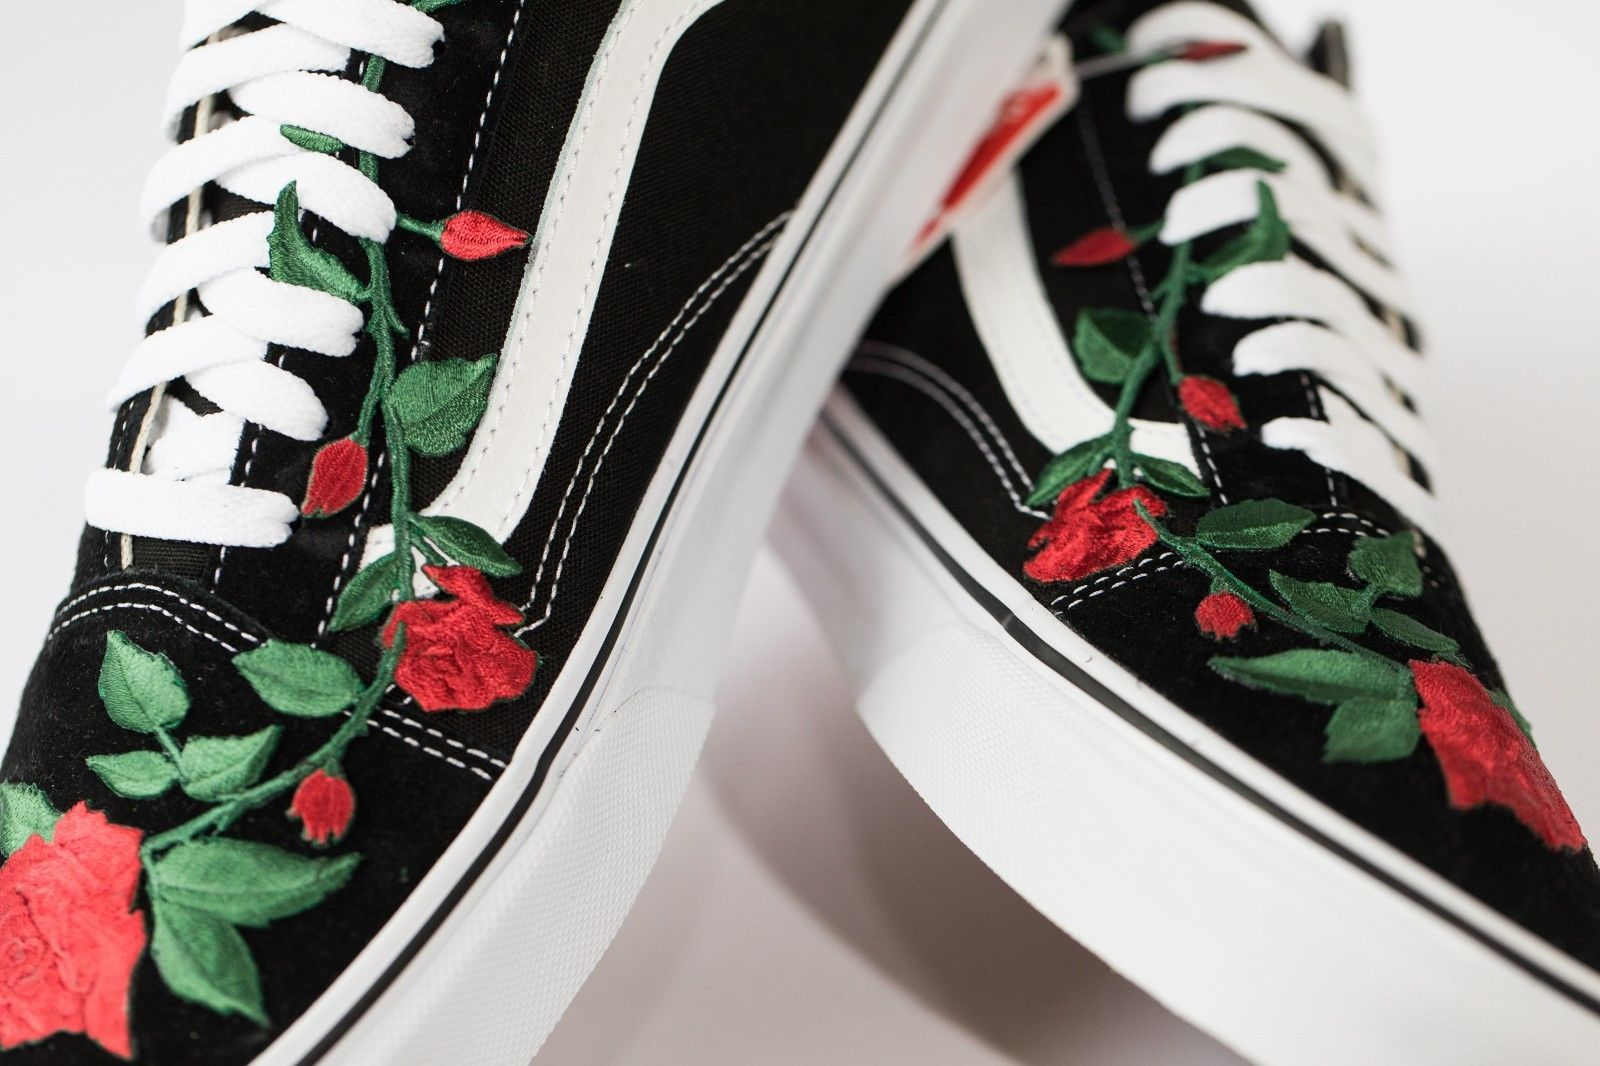 Vans Rose embroidered customs available in all sizes black and white